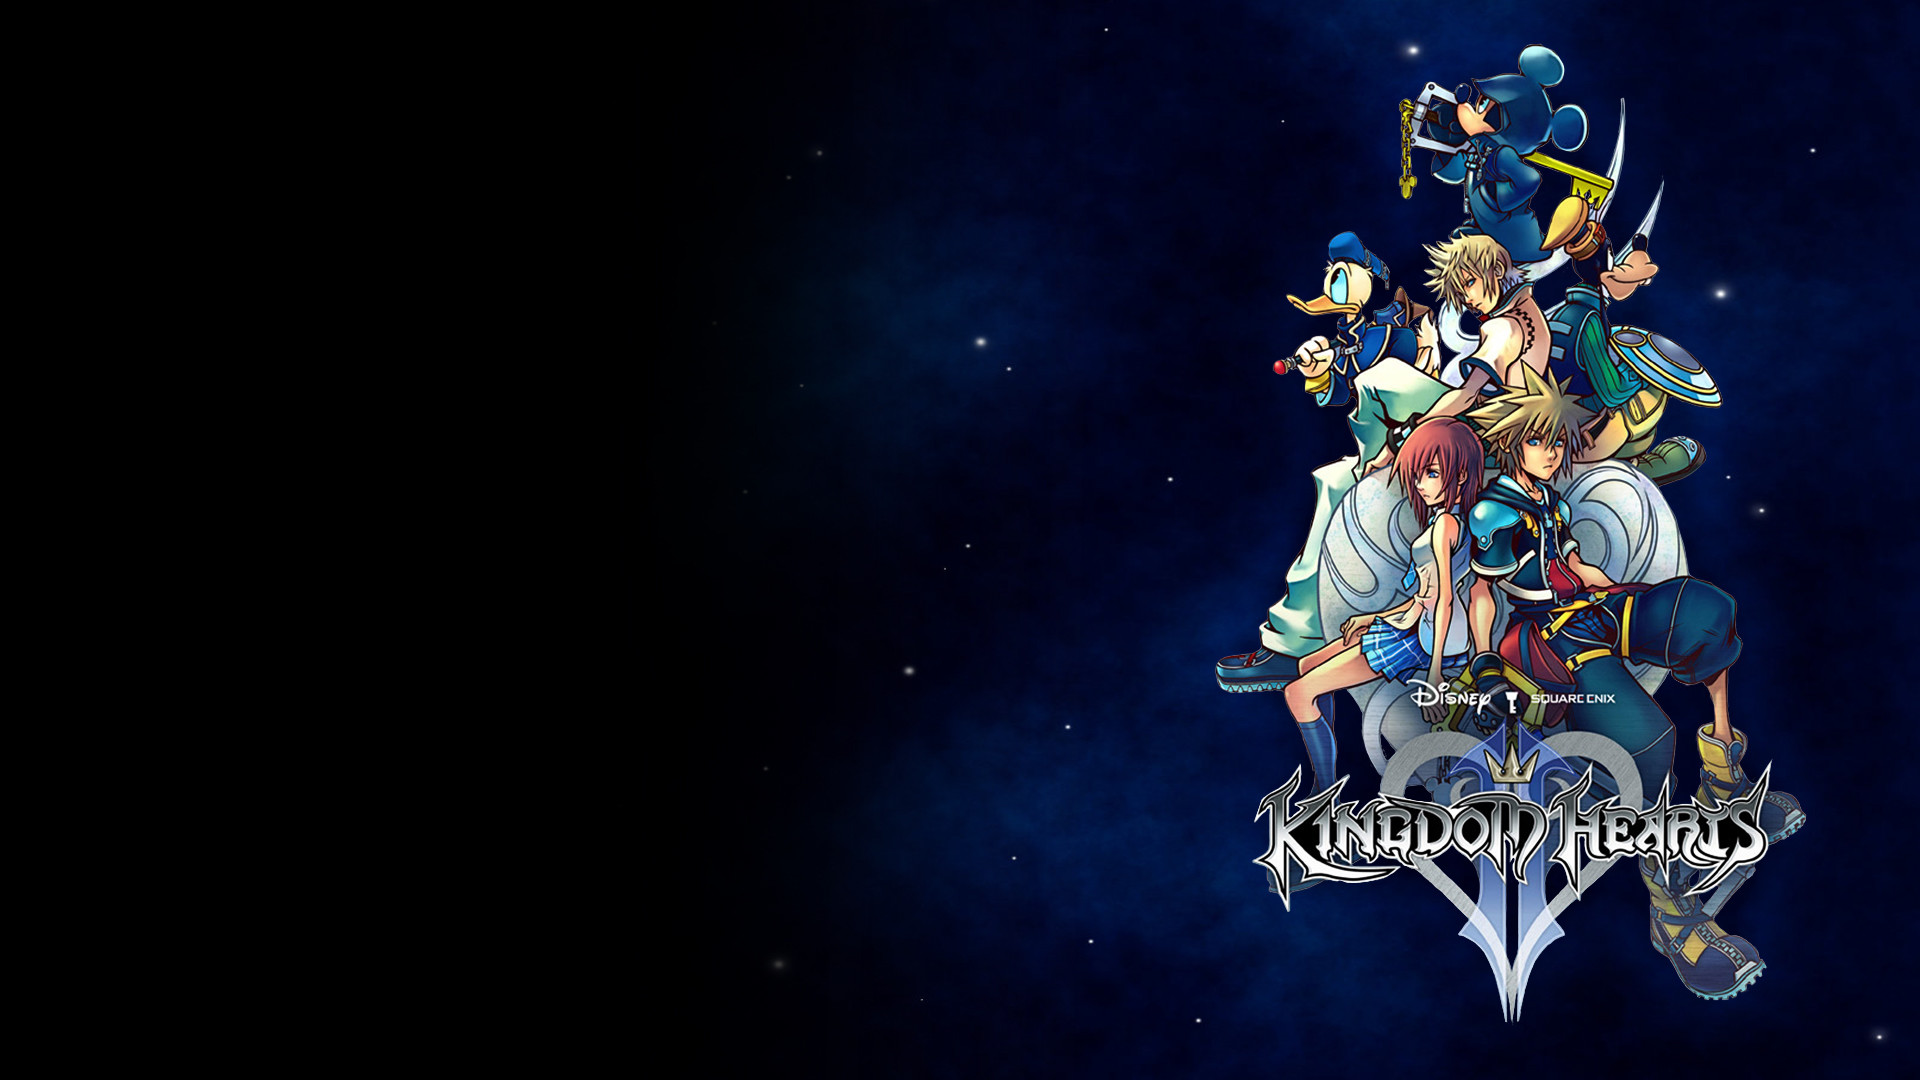 Res: 1920x1080, Kingdom Hearts II Wallpaper